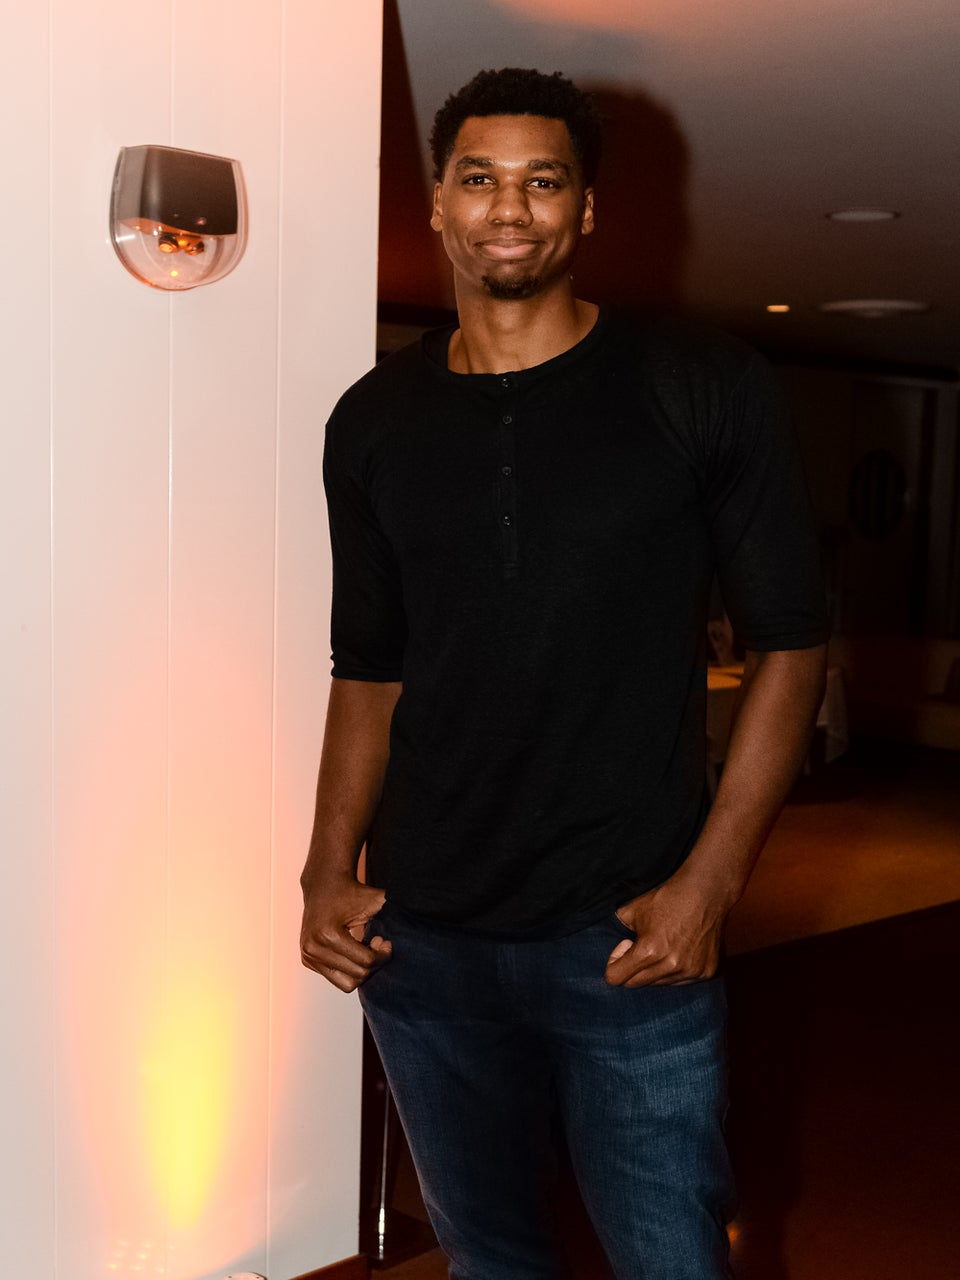 Son Of The Year: Miami Heat's Hassan Whiteside Surprises Mom With New House